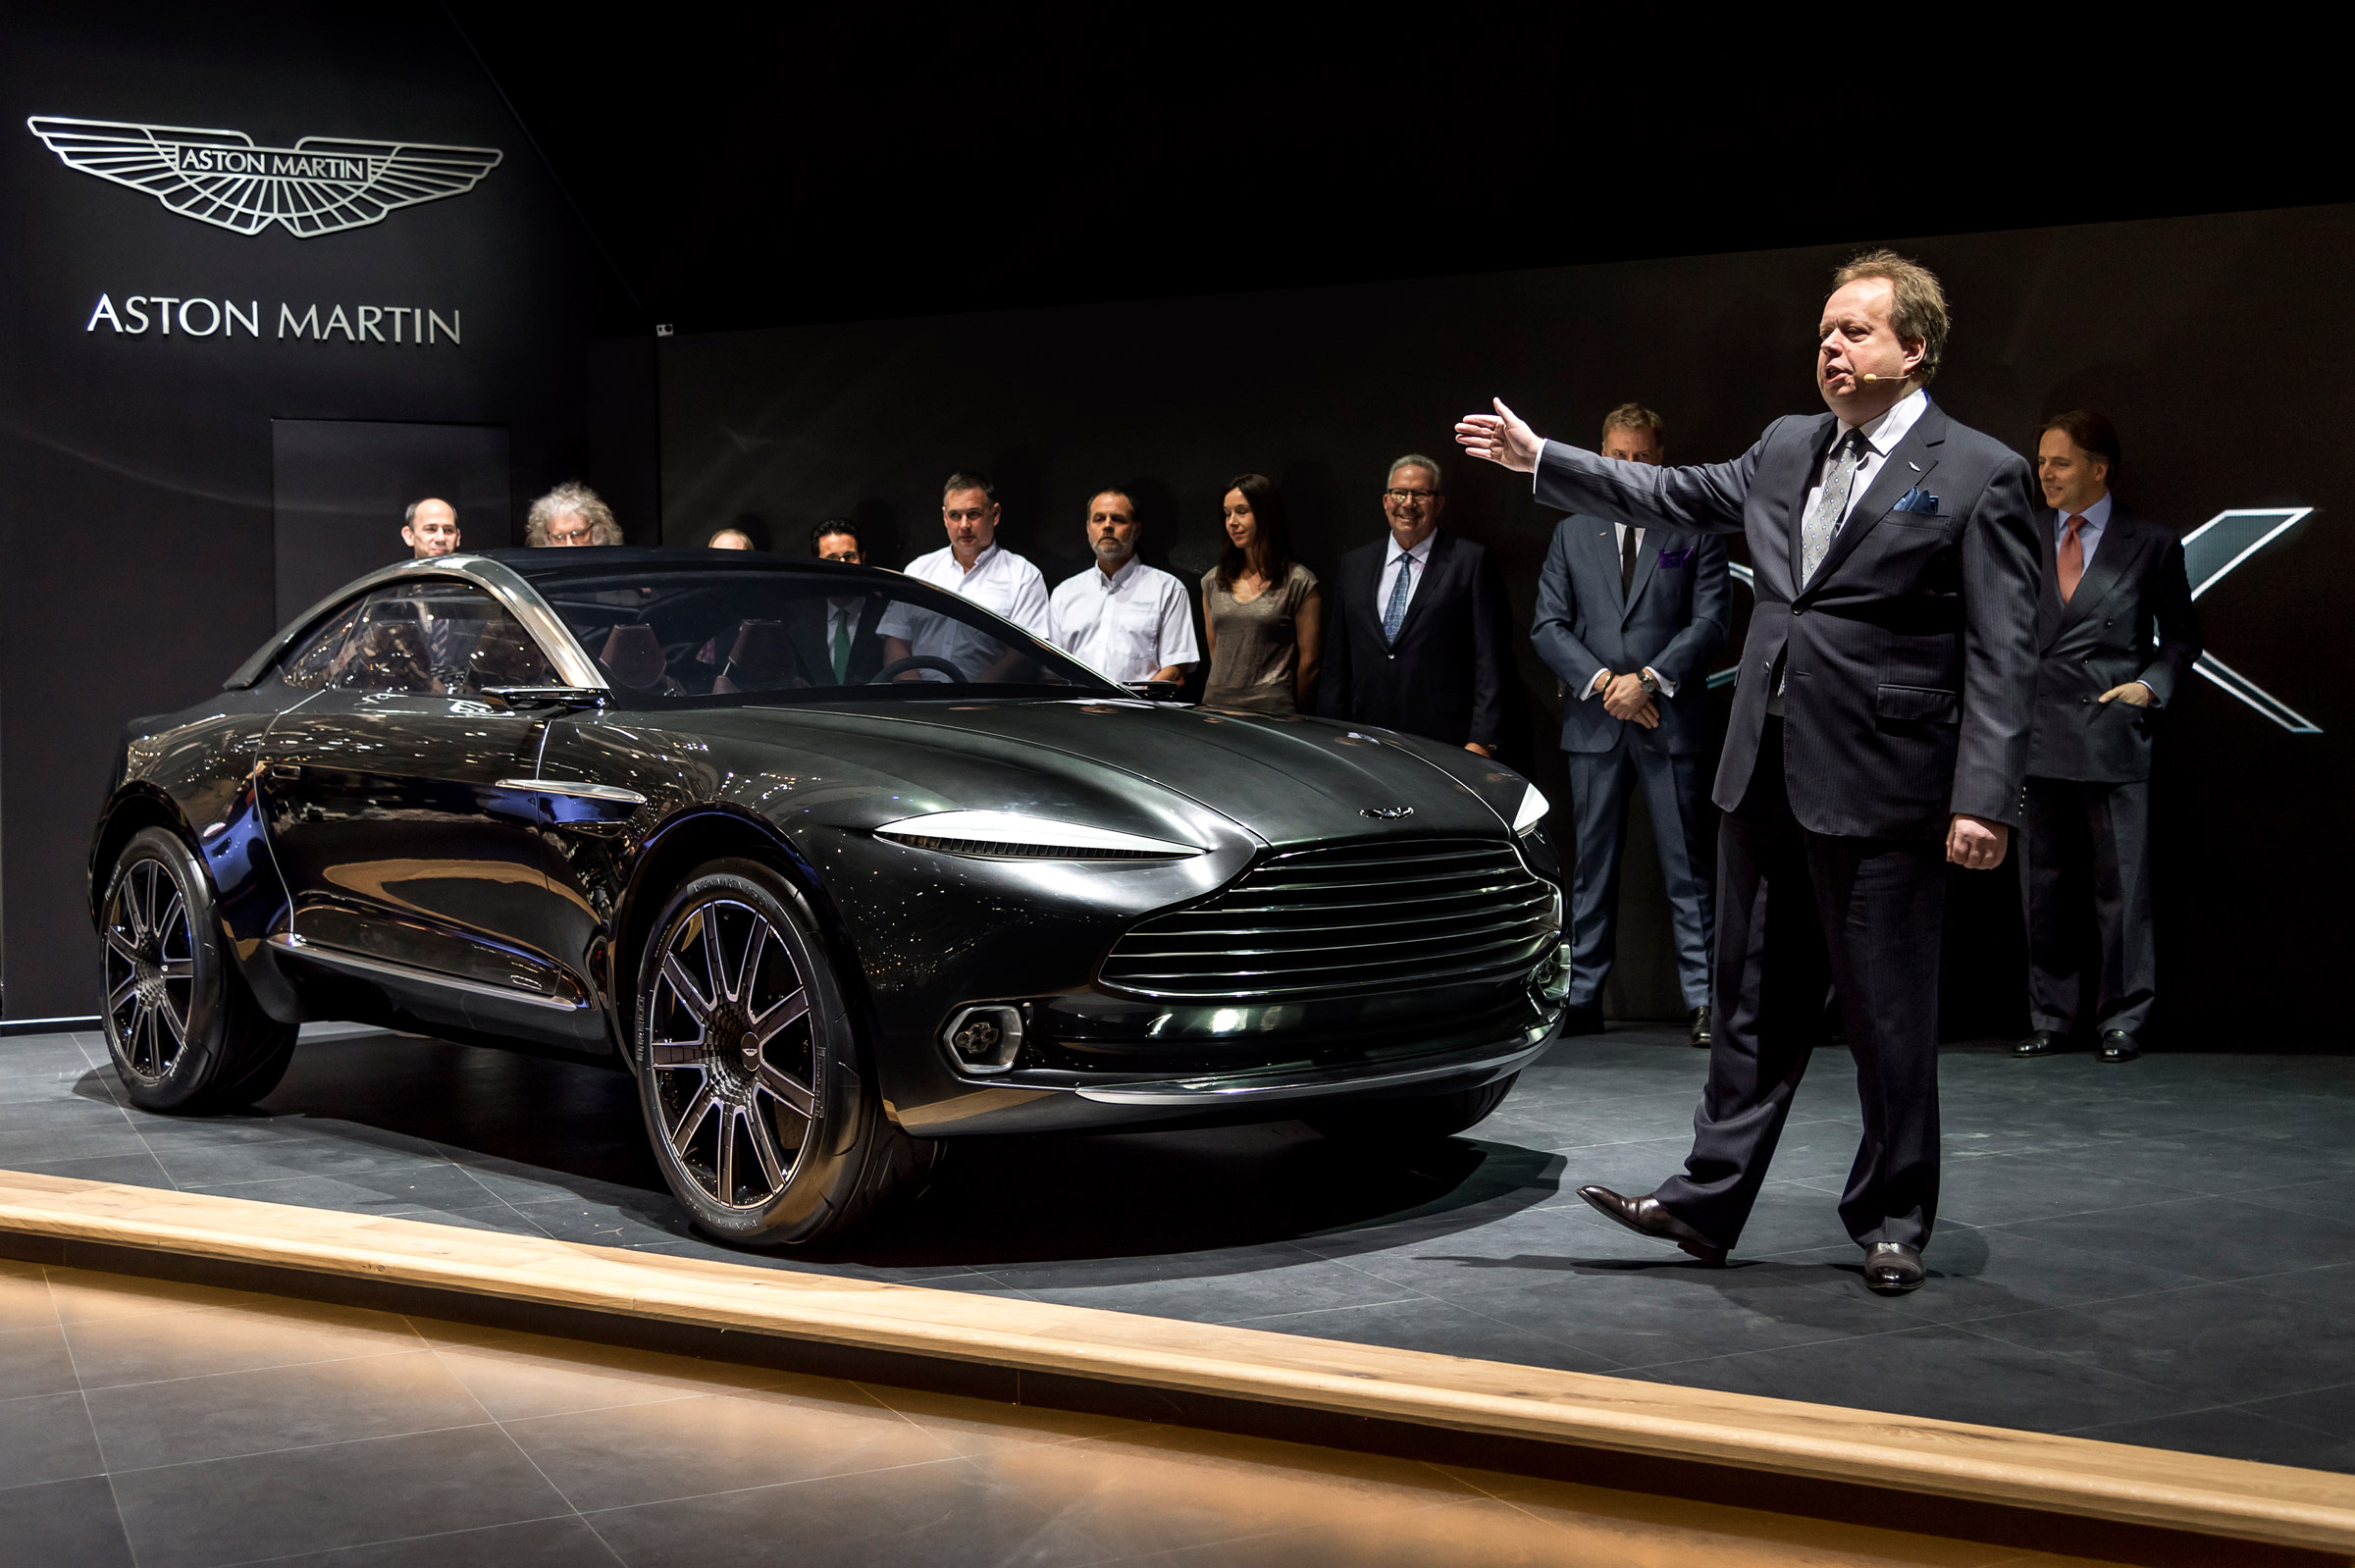 New Aston Martin factory: DBX crossover will be hand built in Wales